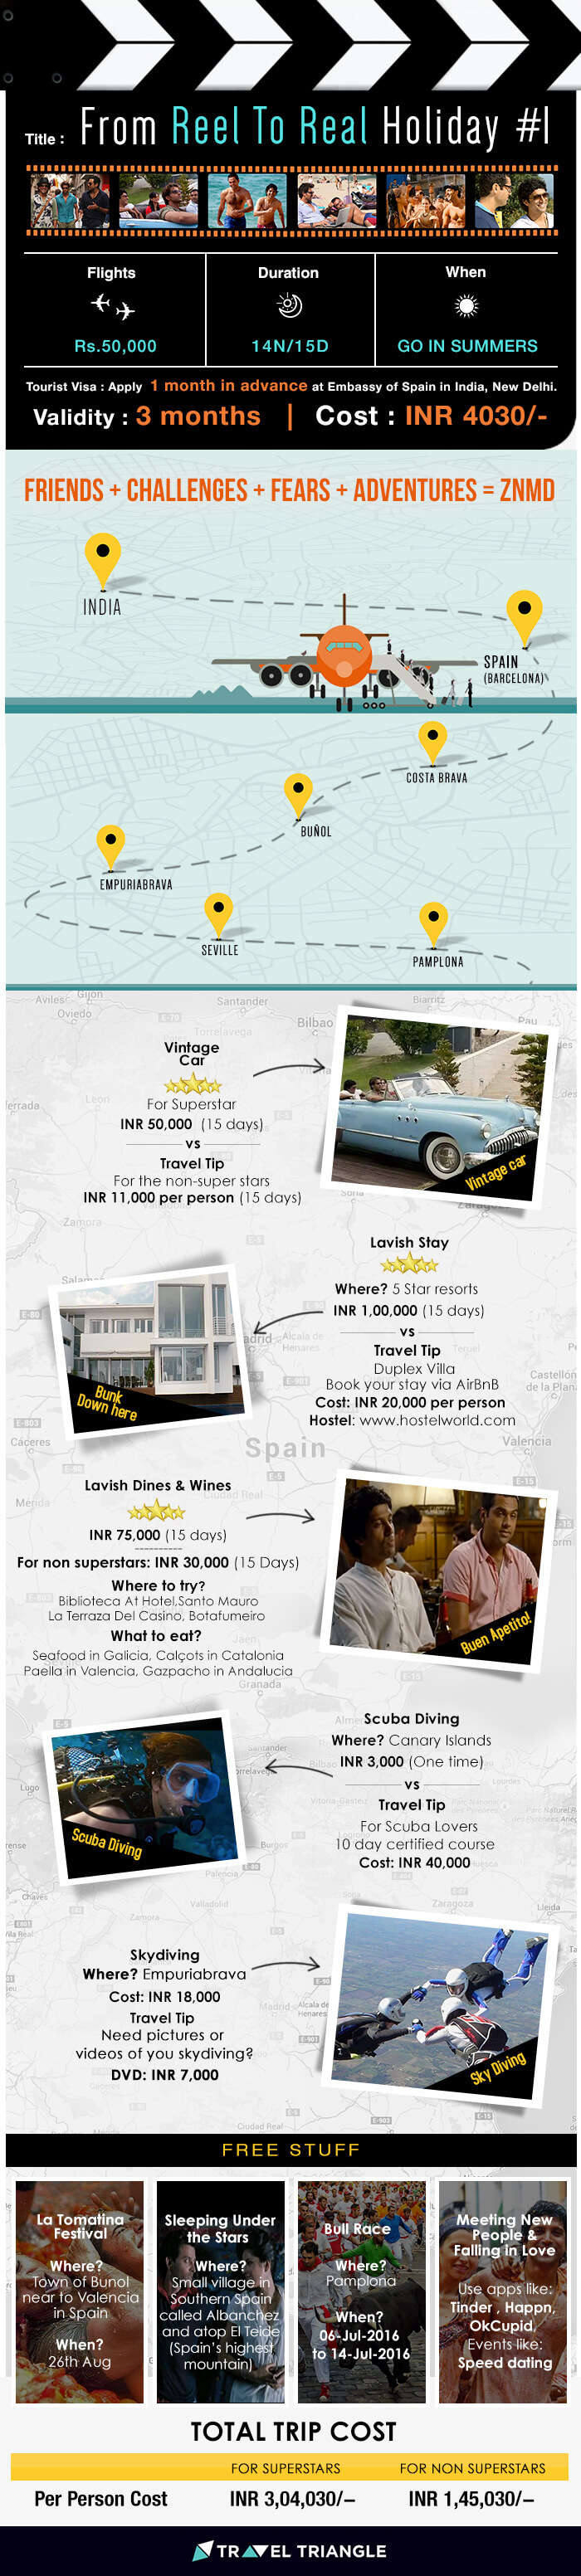 From Reel To Real Holidays- Zindagi Na Milegi Dobara Infographics